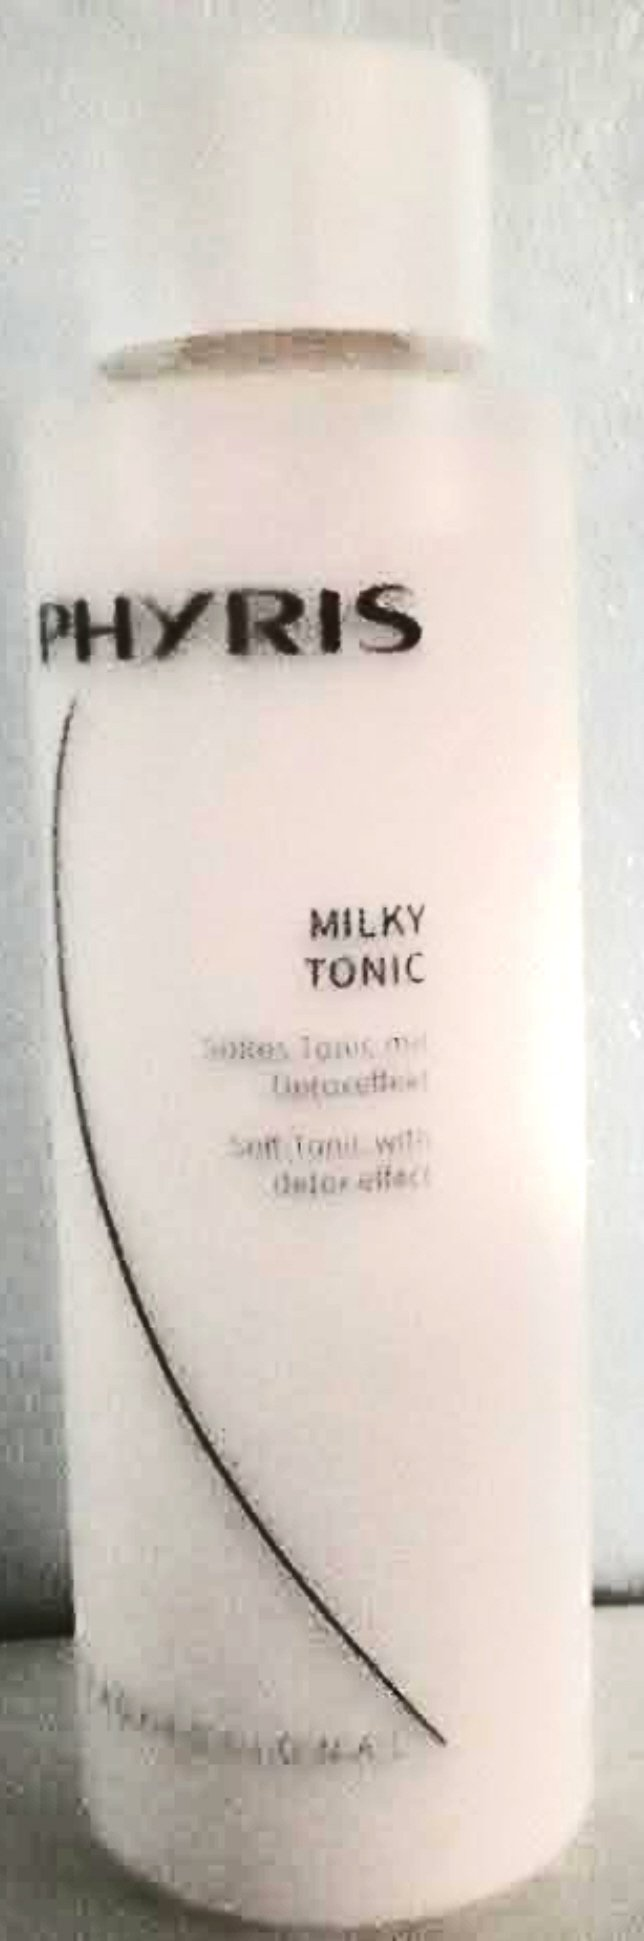 Phyris Milky Tonic 400 ml Pro size. Soft Tonic with detox effect. For a soft, smooth and clean skin sensation